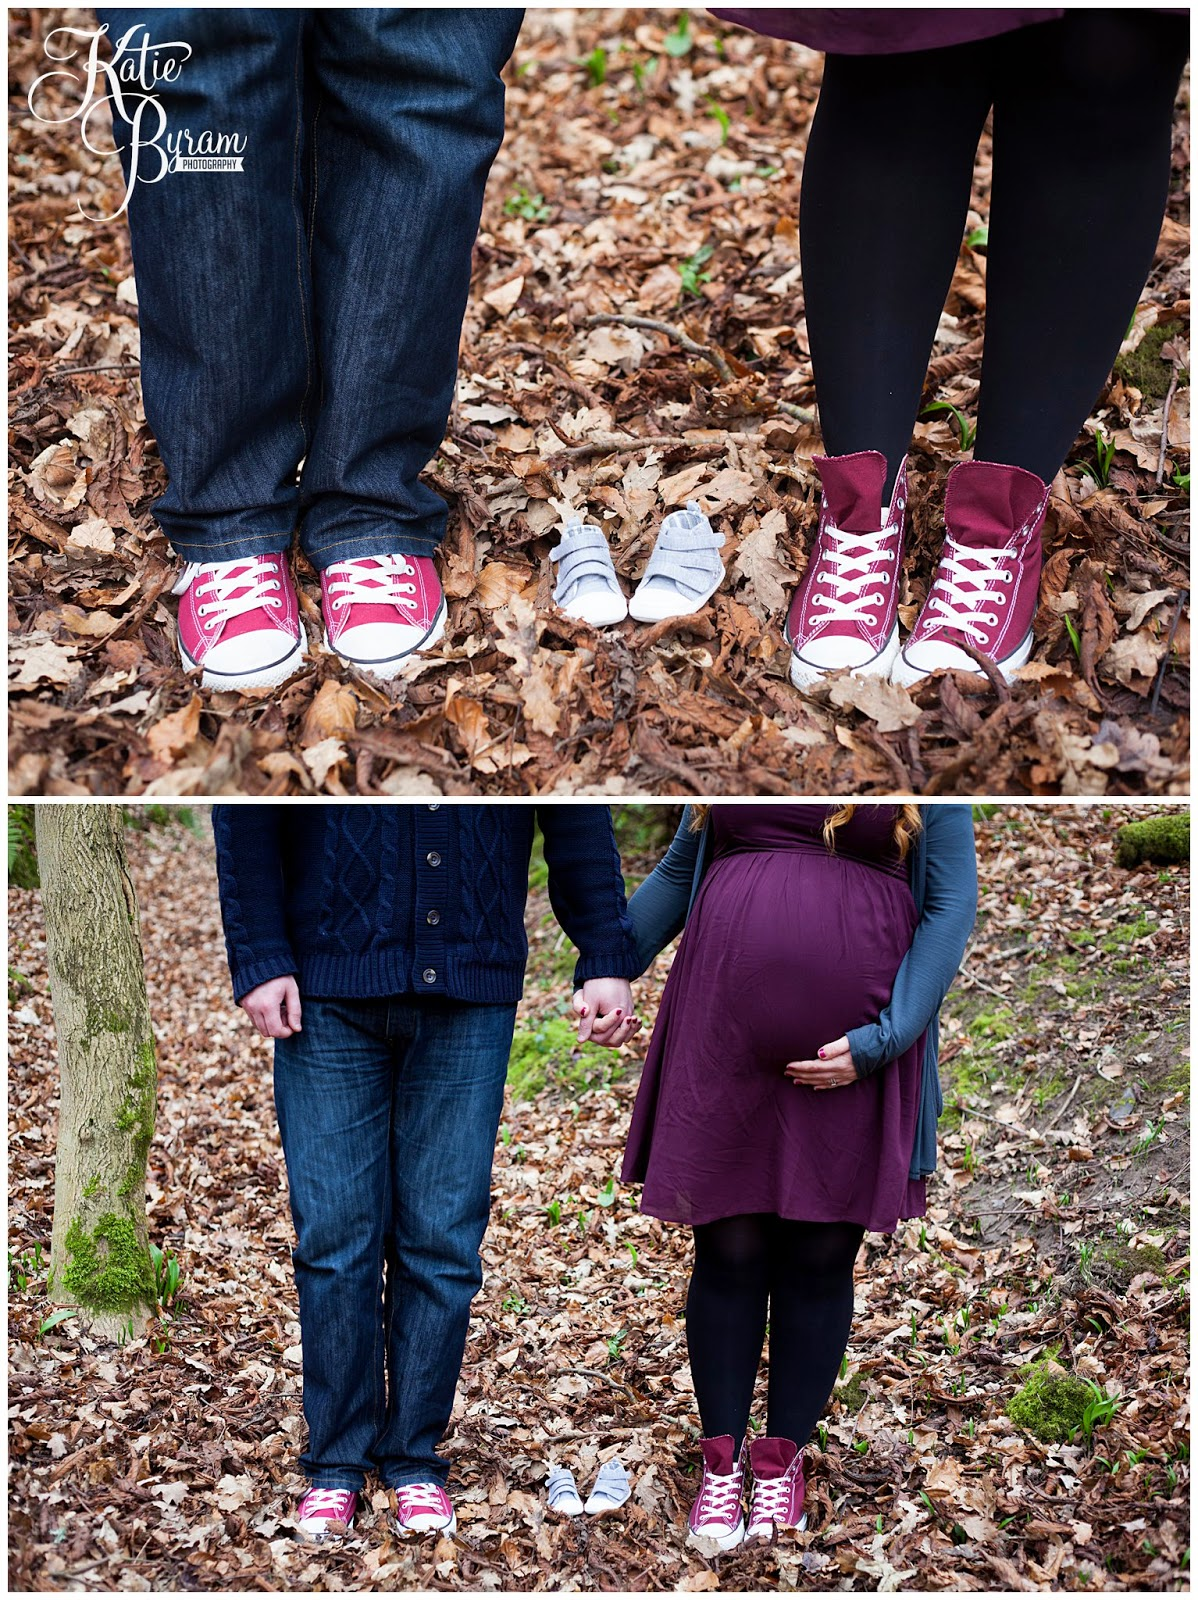 maternity photoshoot, maternity photos, northumberland photoshoot, maternity photography, katie byram photography, woodland maternity shoot, converse, mum and dad to be, coming soon, pregnancy photographs